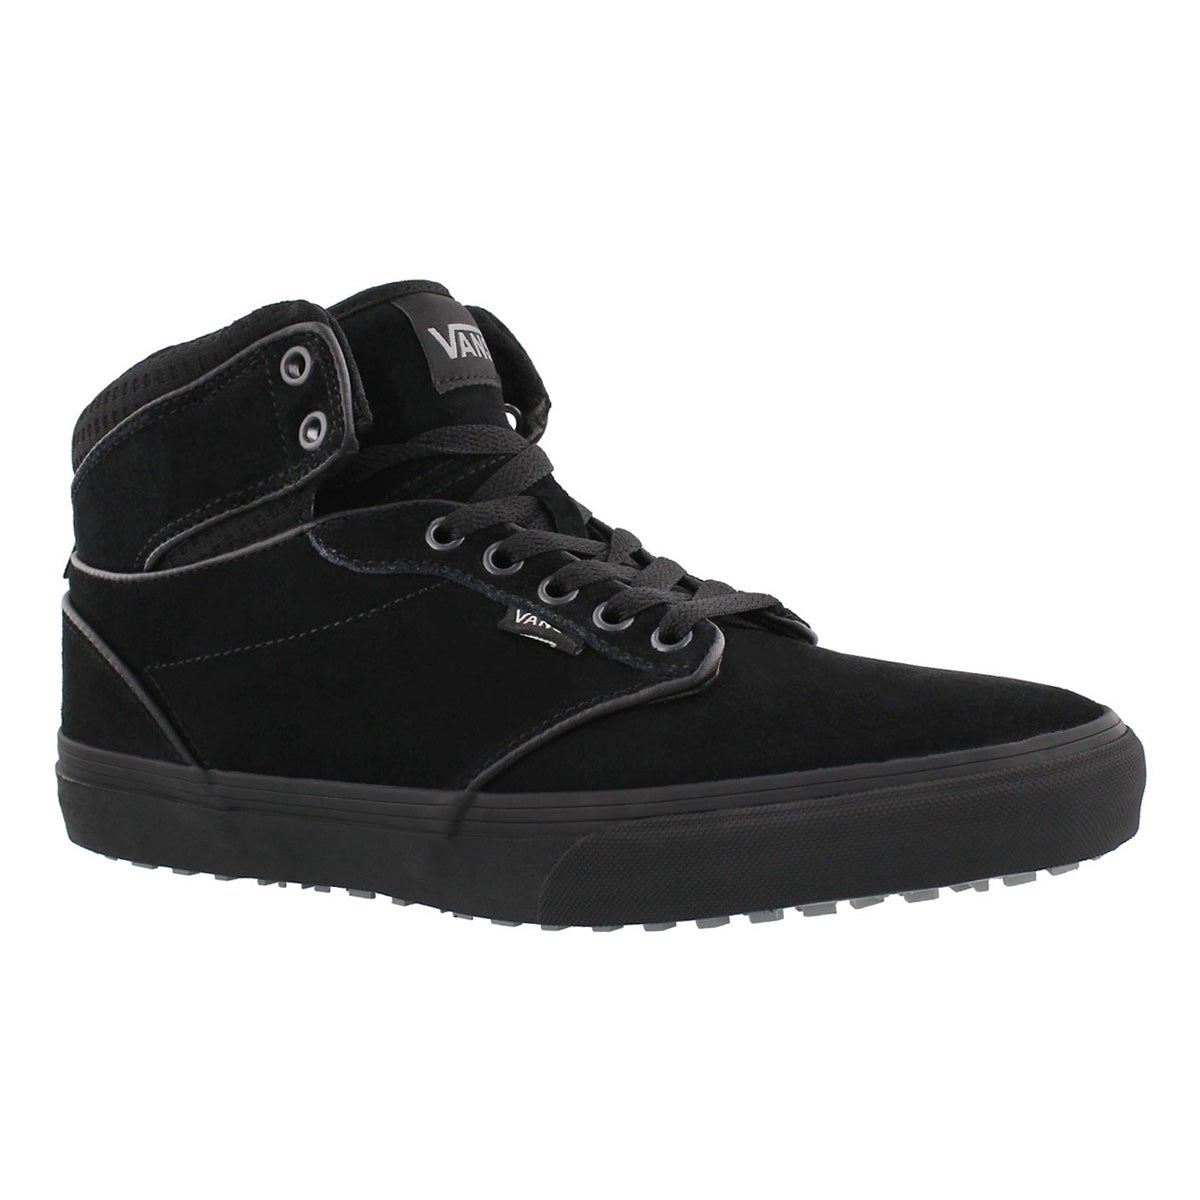 Men's ATWOOD HI MTE black/black sneakers